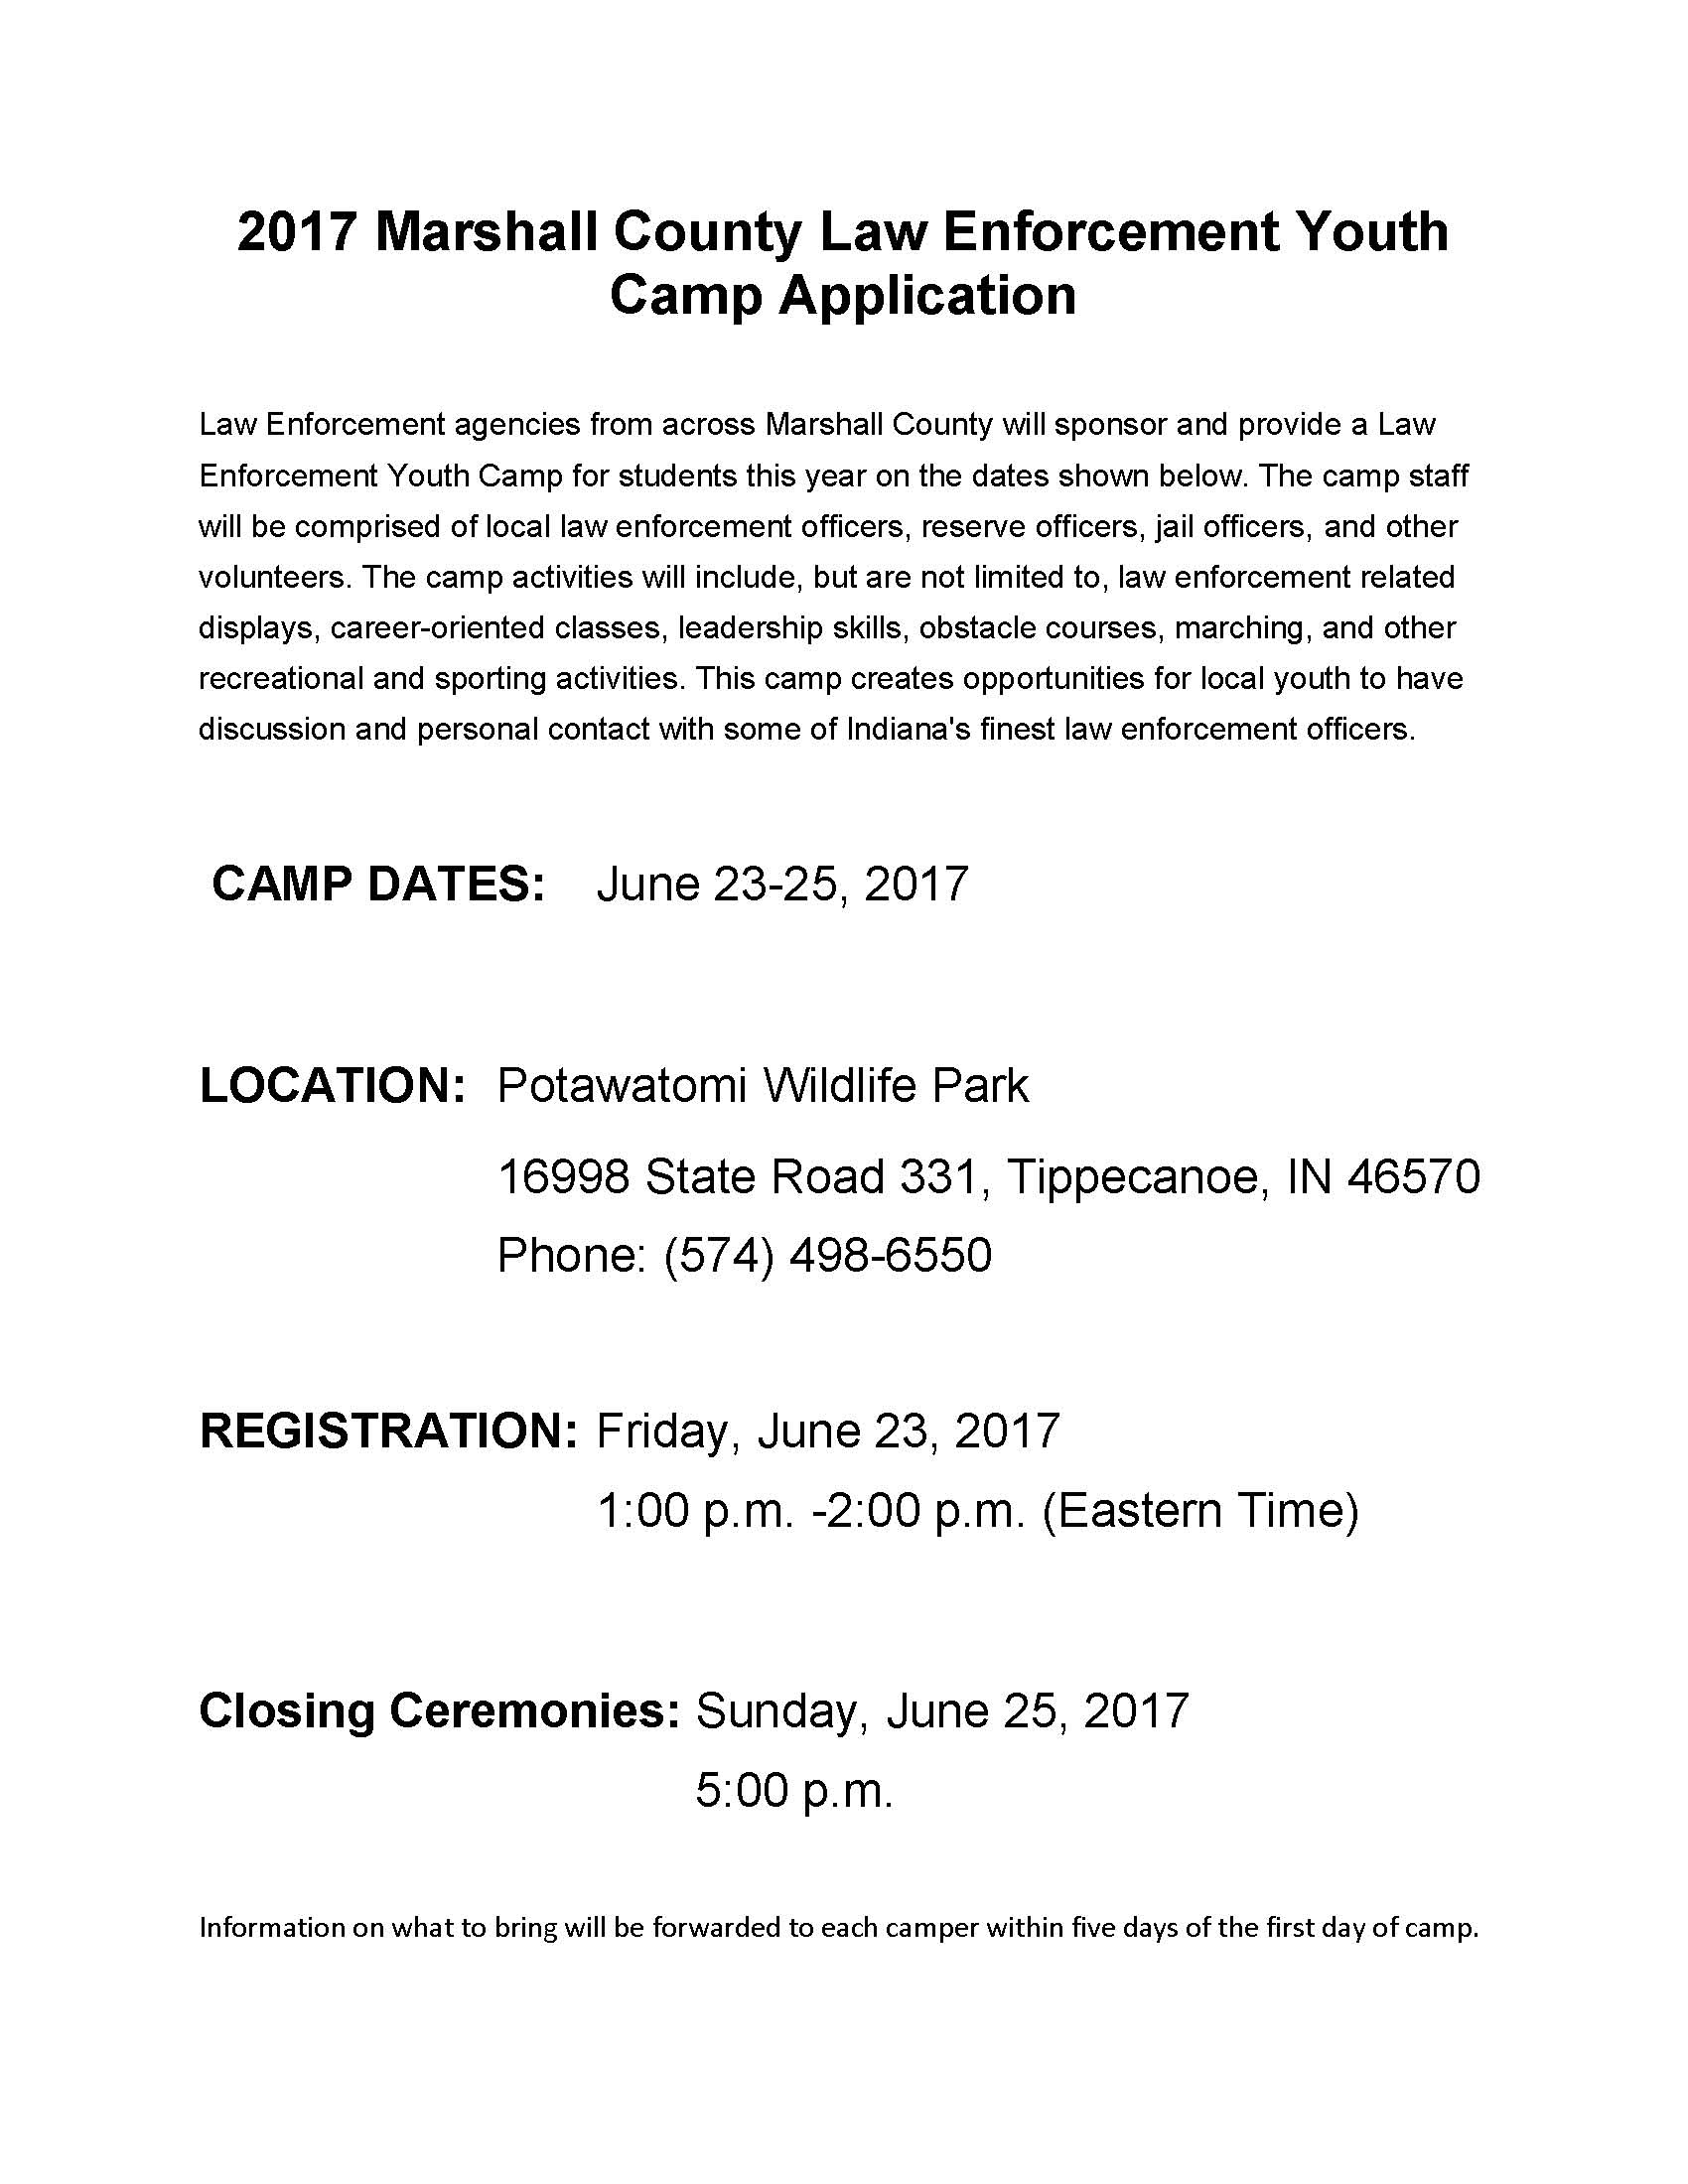 Indiana marshall county tippecanoe - Sheriff Announces 2017 Law Enforcement Camp Sheriff Of Marshall County Indiana